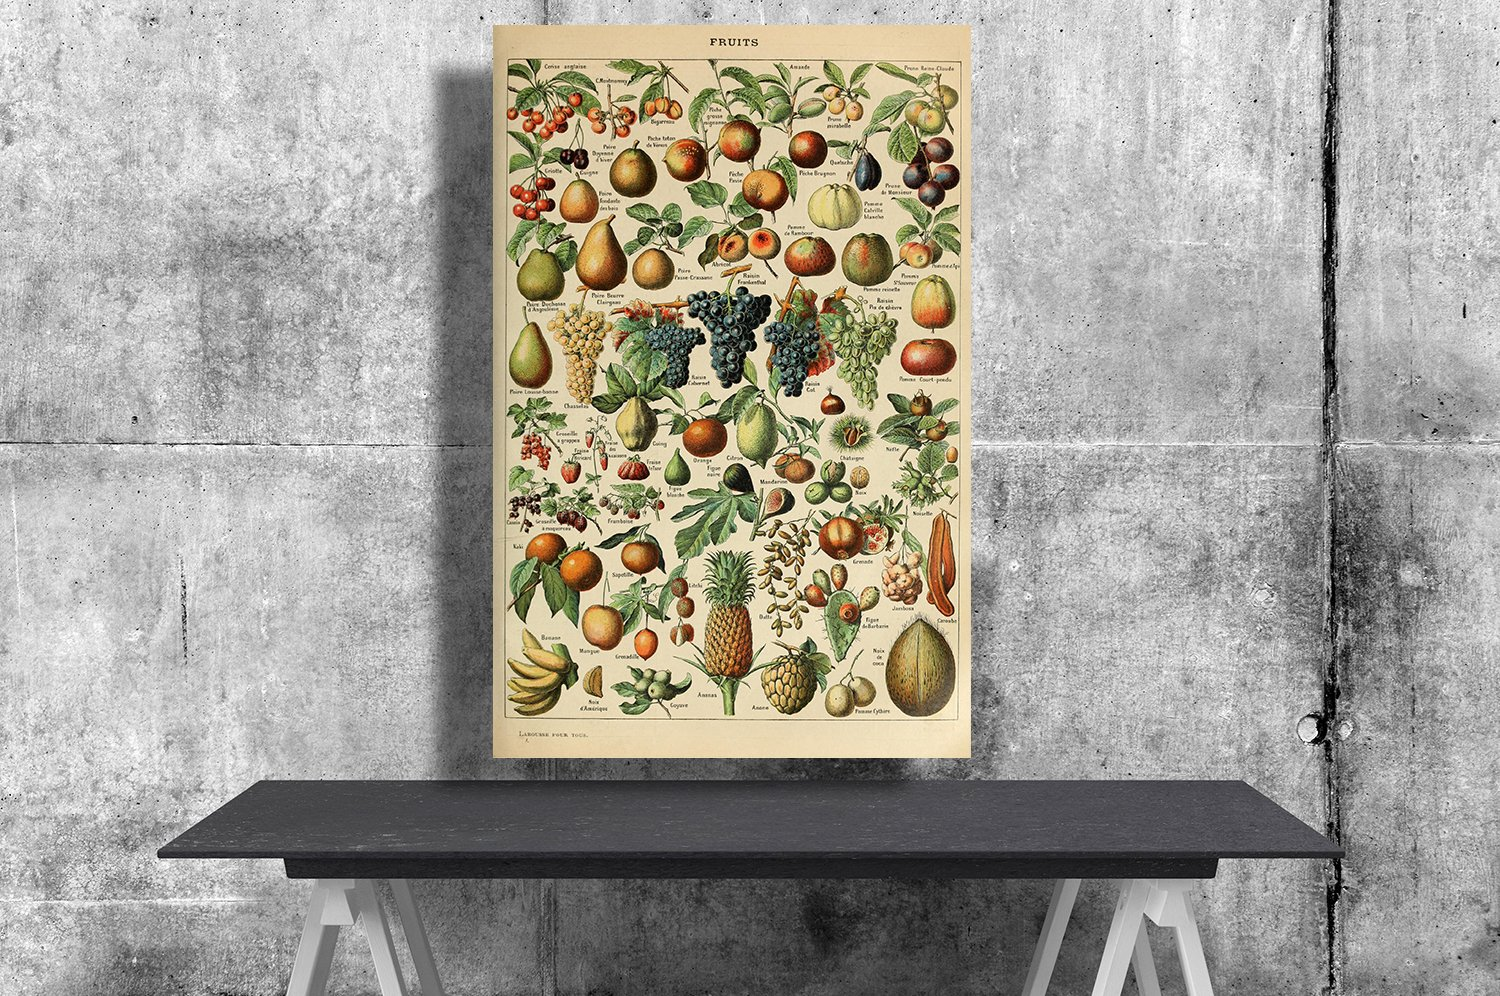 Types of Fruits, Adolphe Millot, Chart  24x35 inches Canvas Print